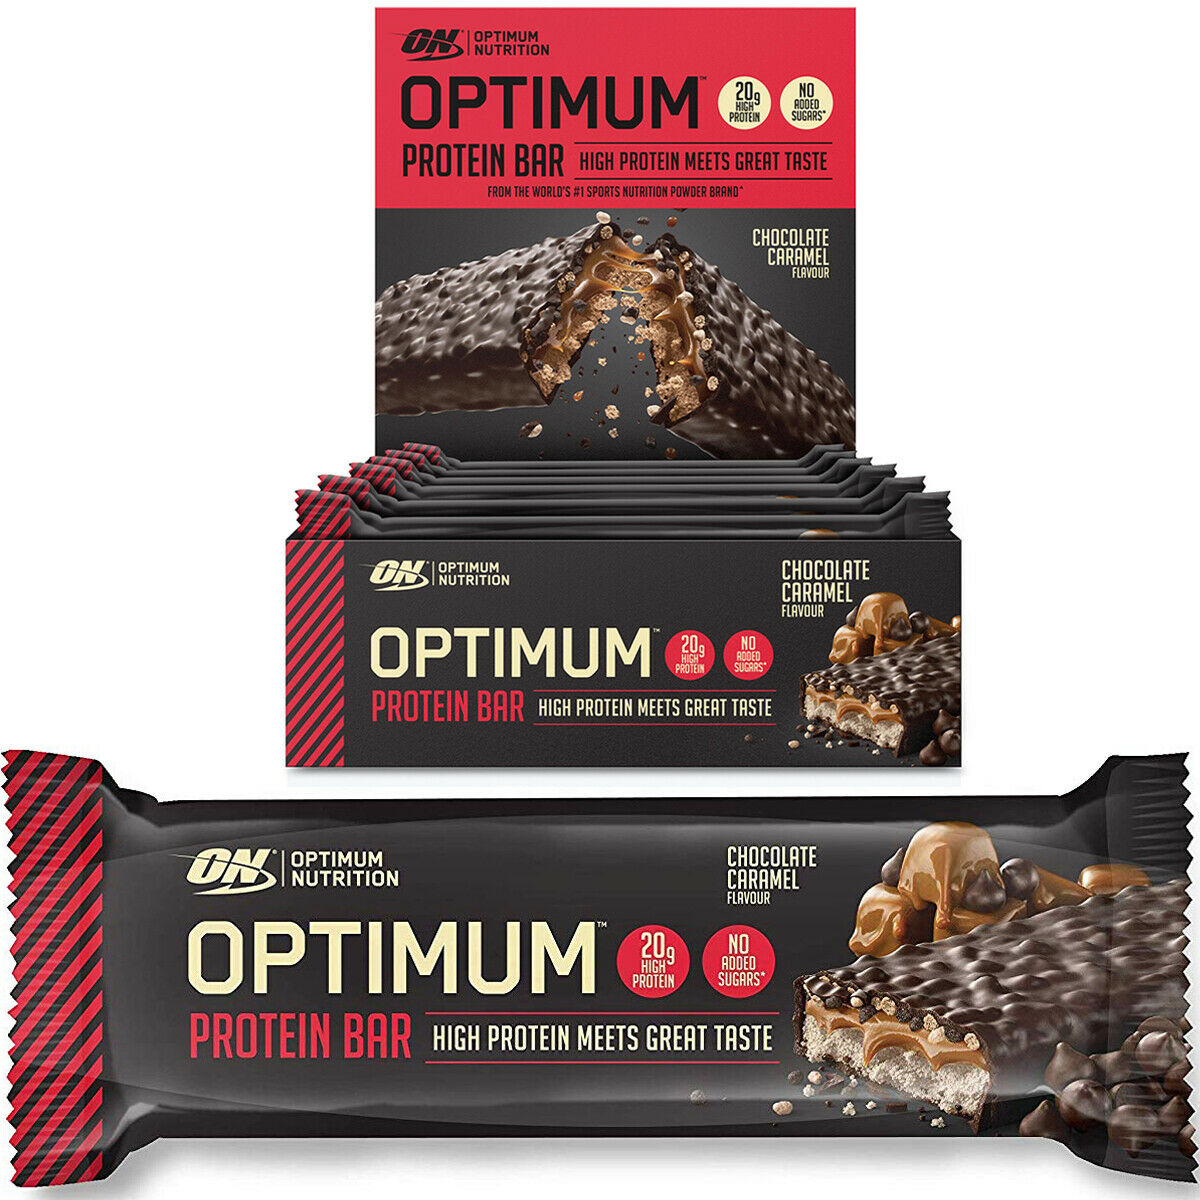 Optimum Nutrition Optimum Protein Bar 10x60g